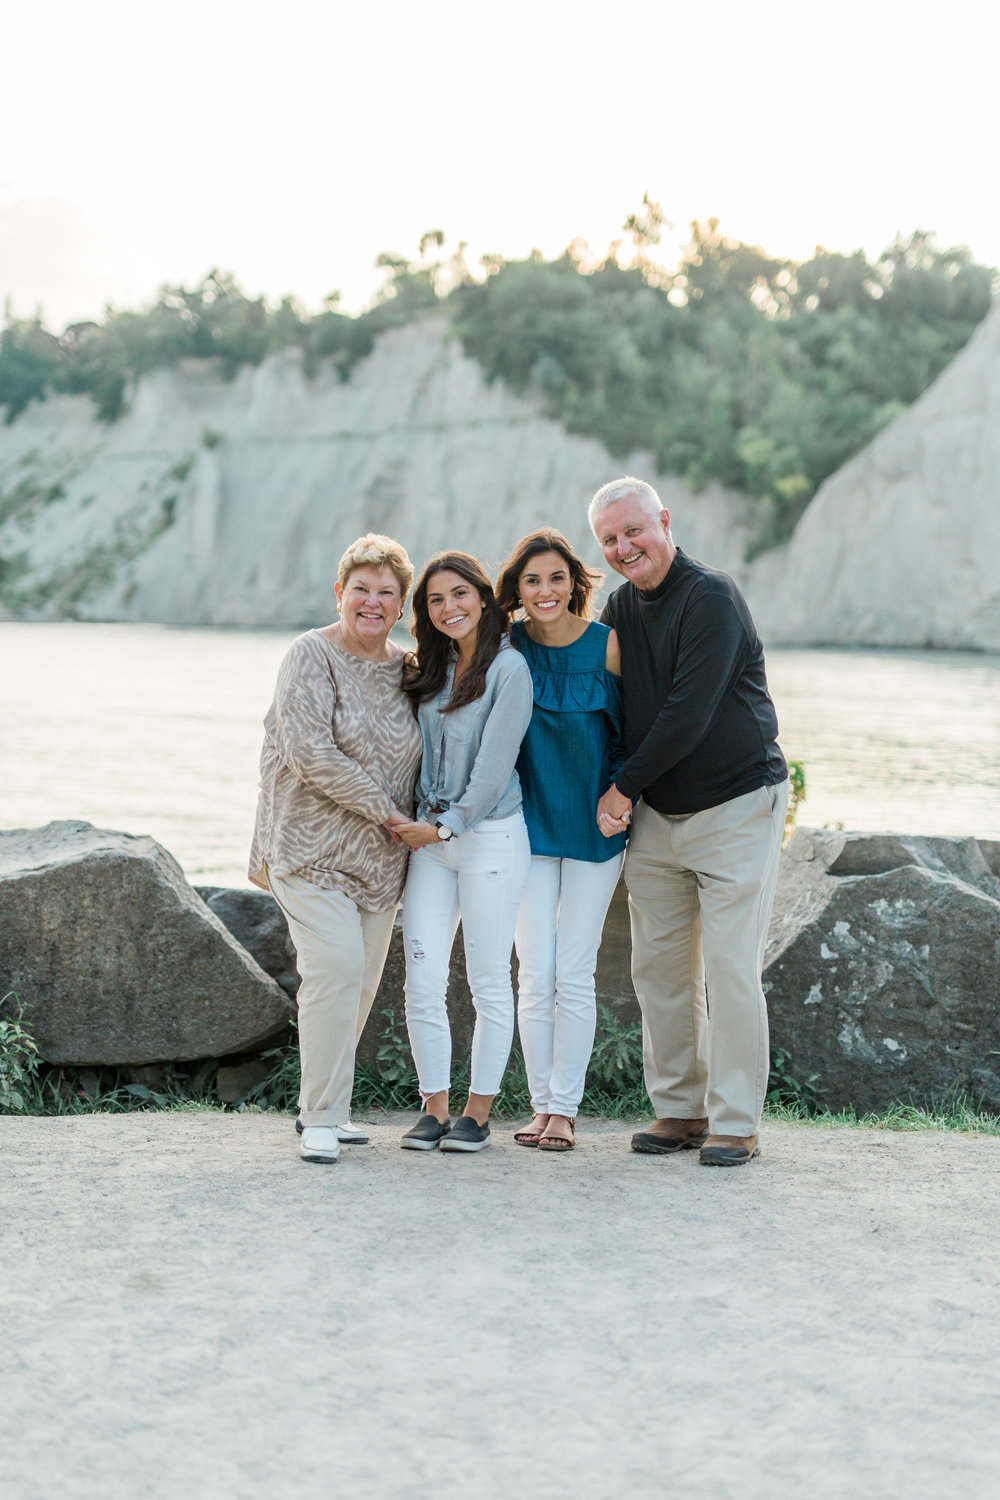 Danielle-Giroux-Amir-Golbazi-Genua-Family-Photography-Scarborough-Bluffs-9439.jpg